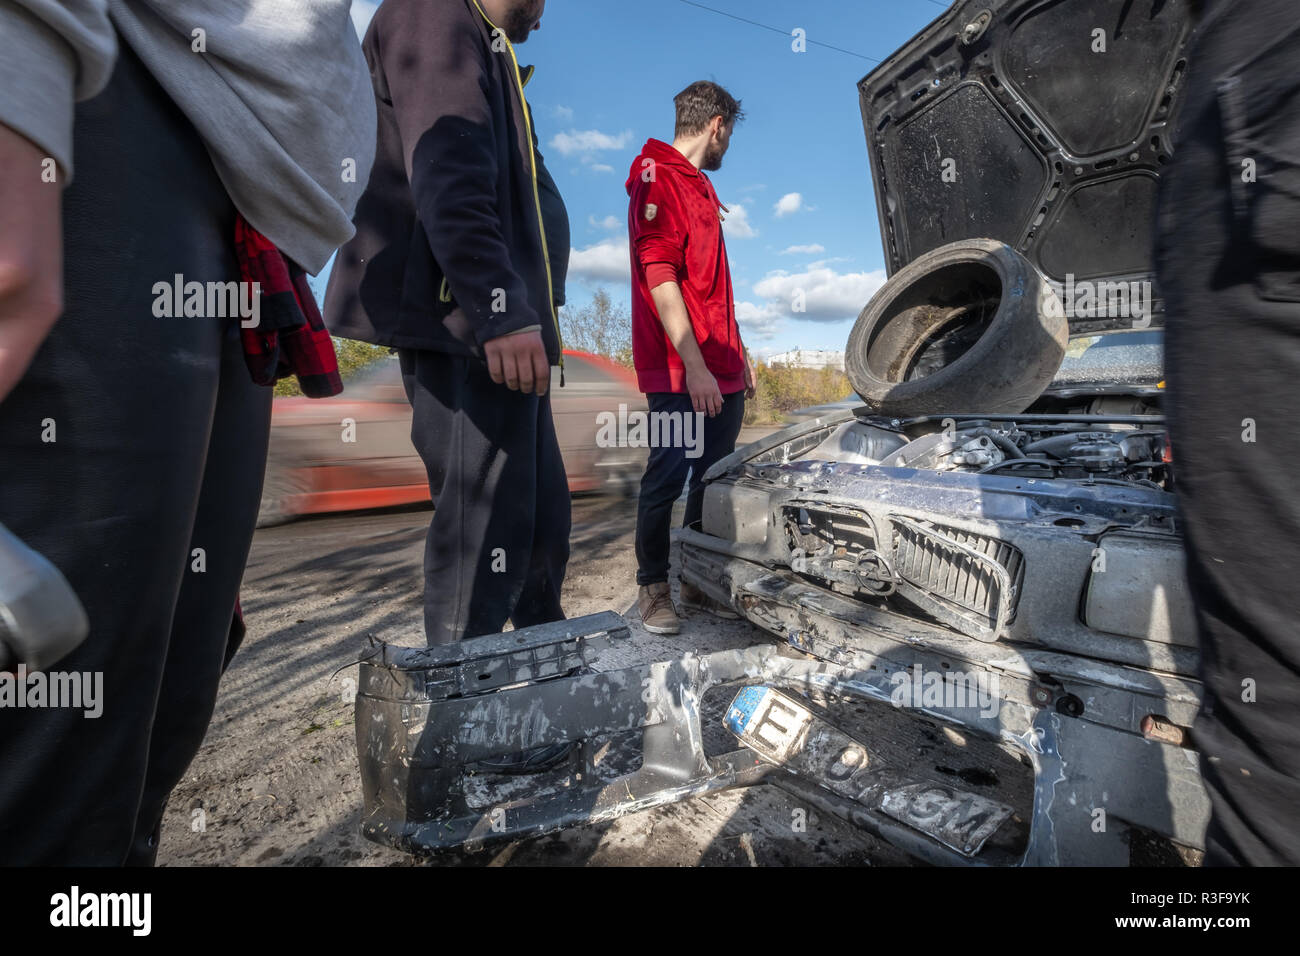 Warsaw / Poland - October 21, 2018: 4 men repairing broken car during amateur drifting event in Ursus, abandoned tractor factory in Warsaw outskirts. - Stock Image